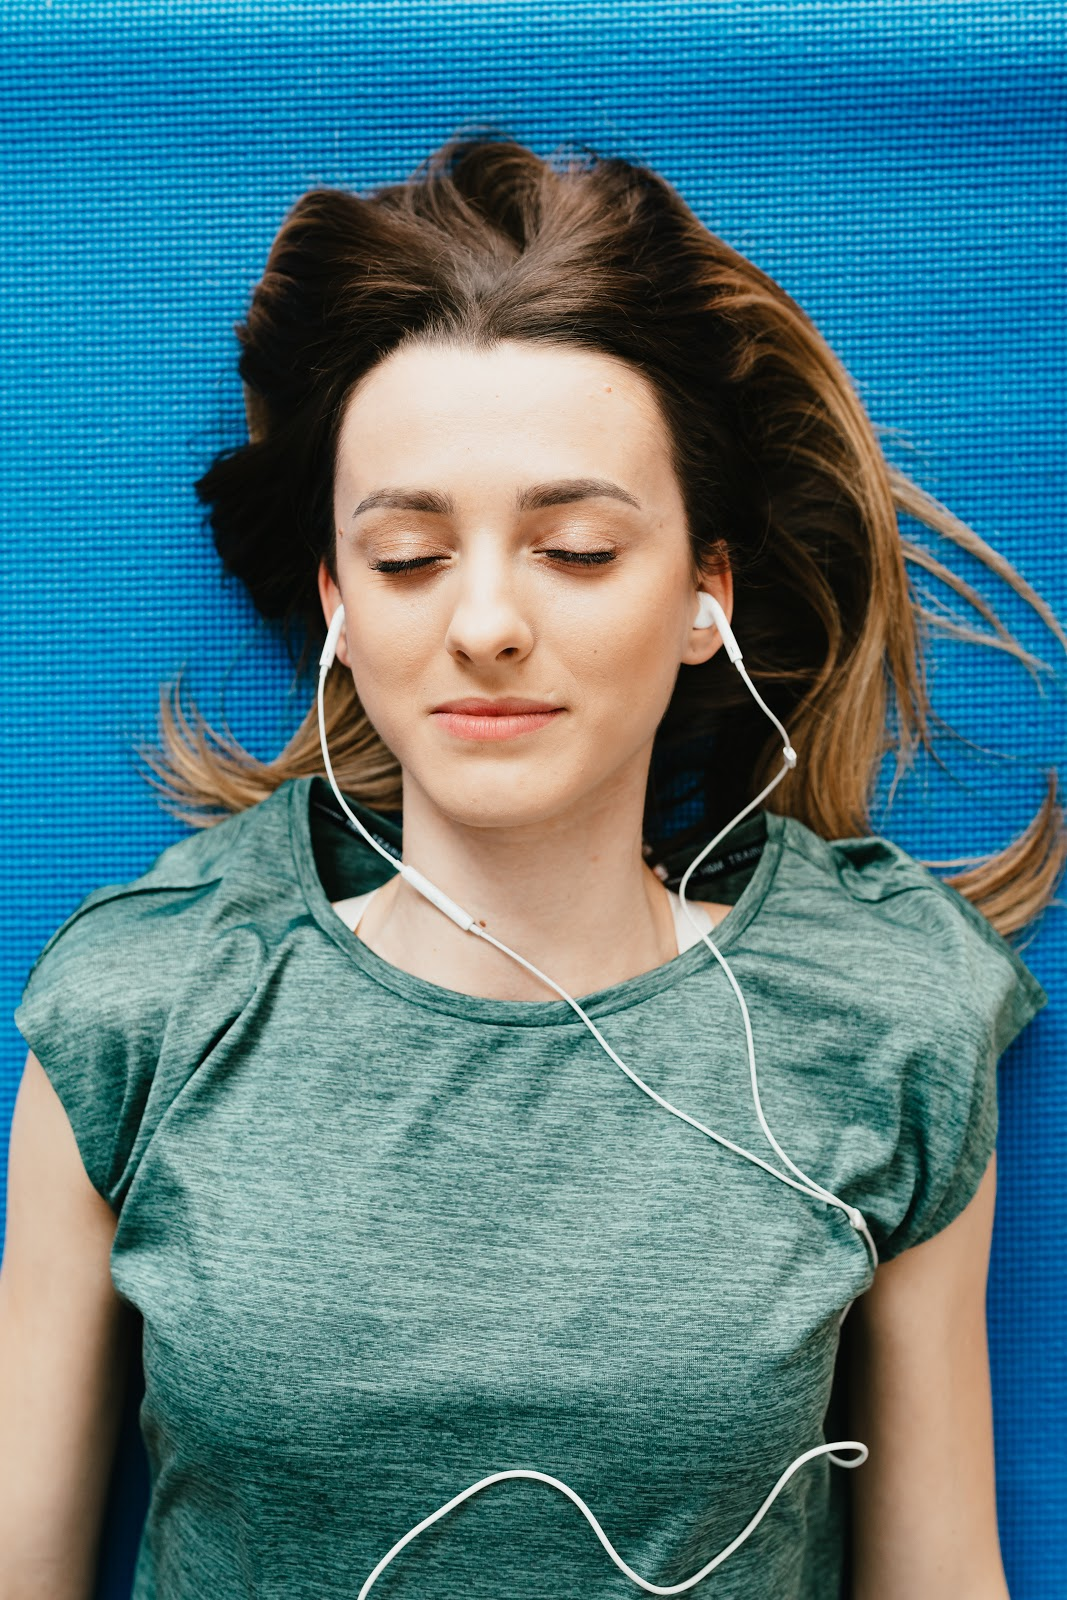 woman laying on mat with headphones in